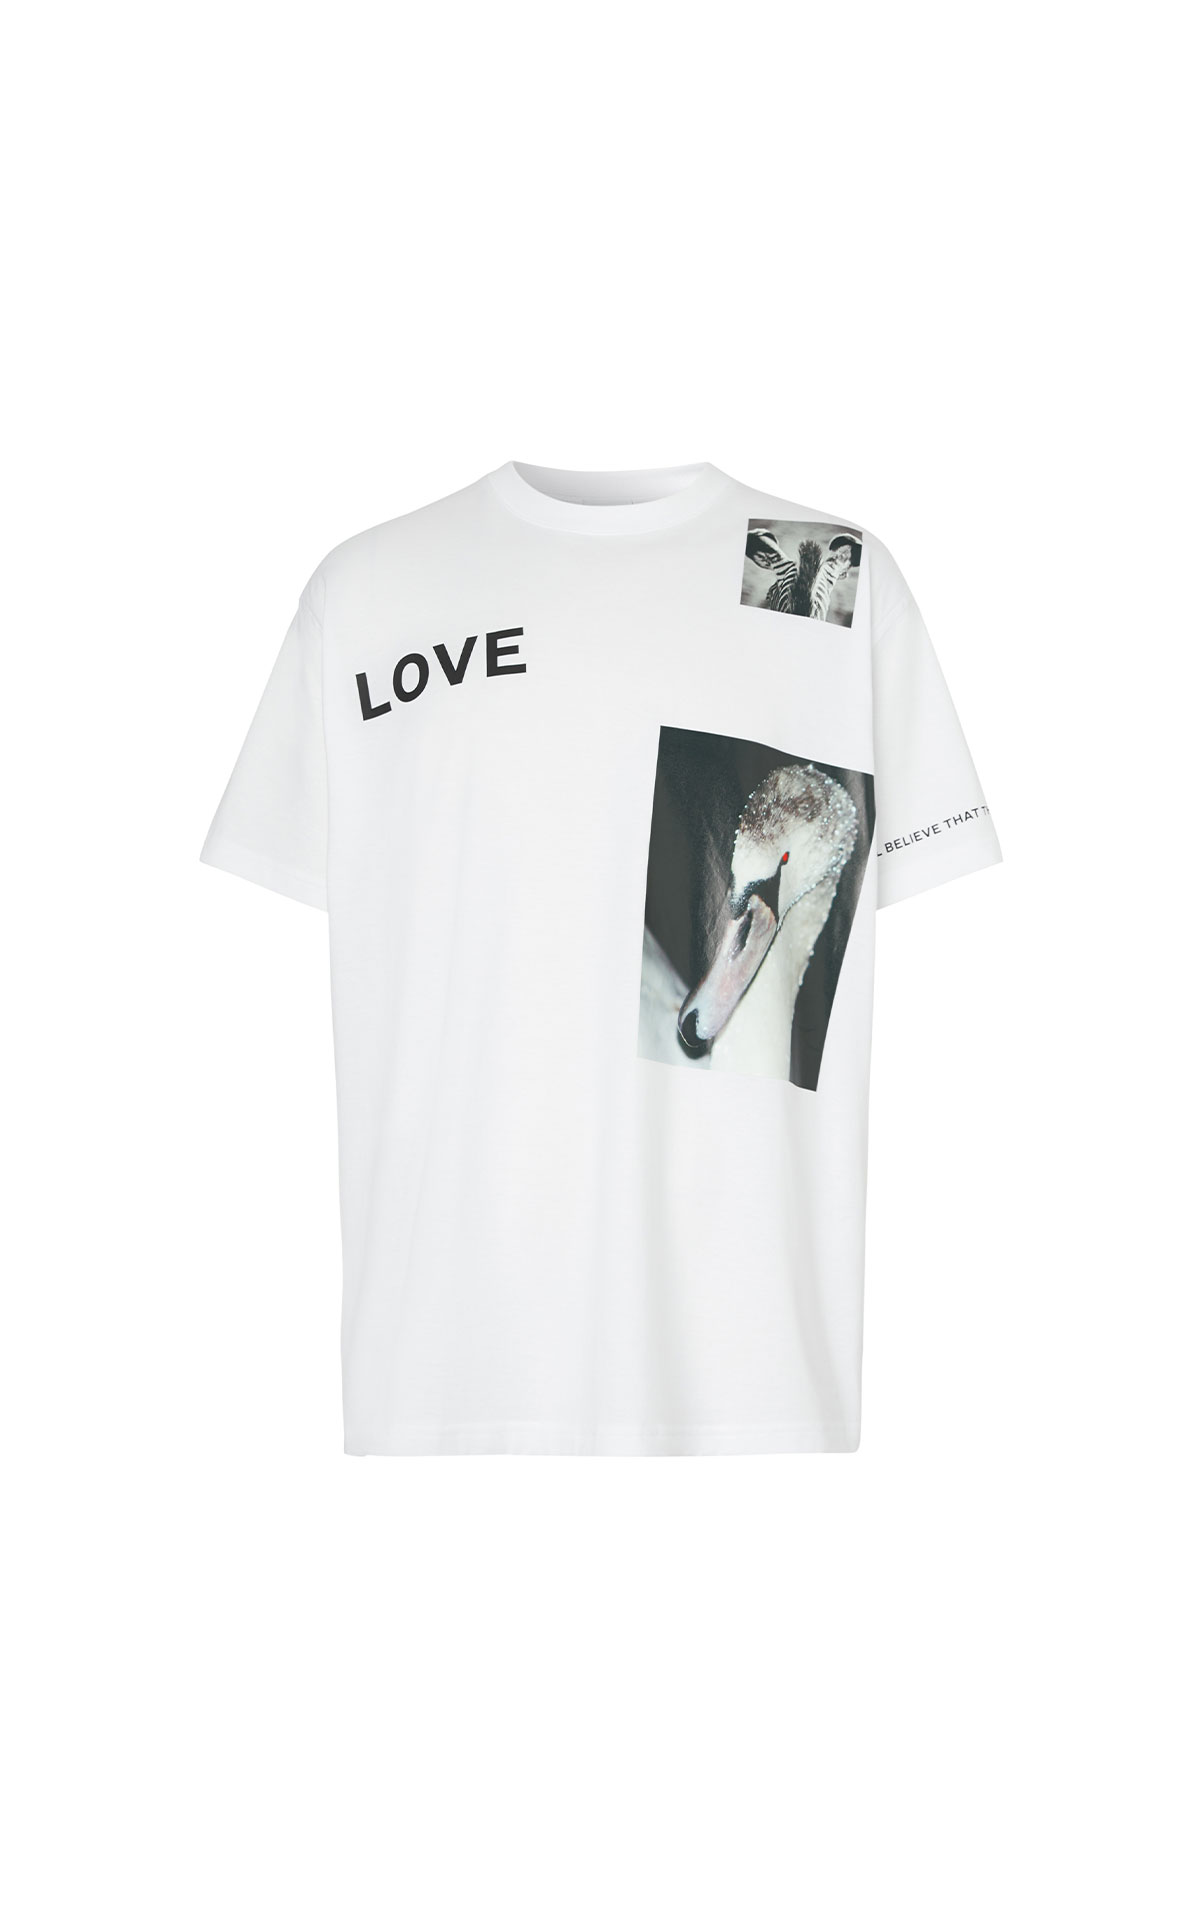 Burberry Men's jerseywear love t-shirt from Bicester Village